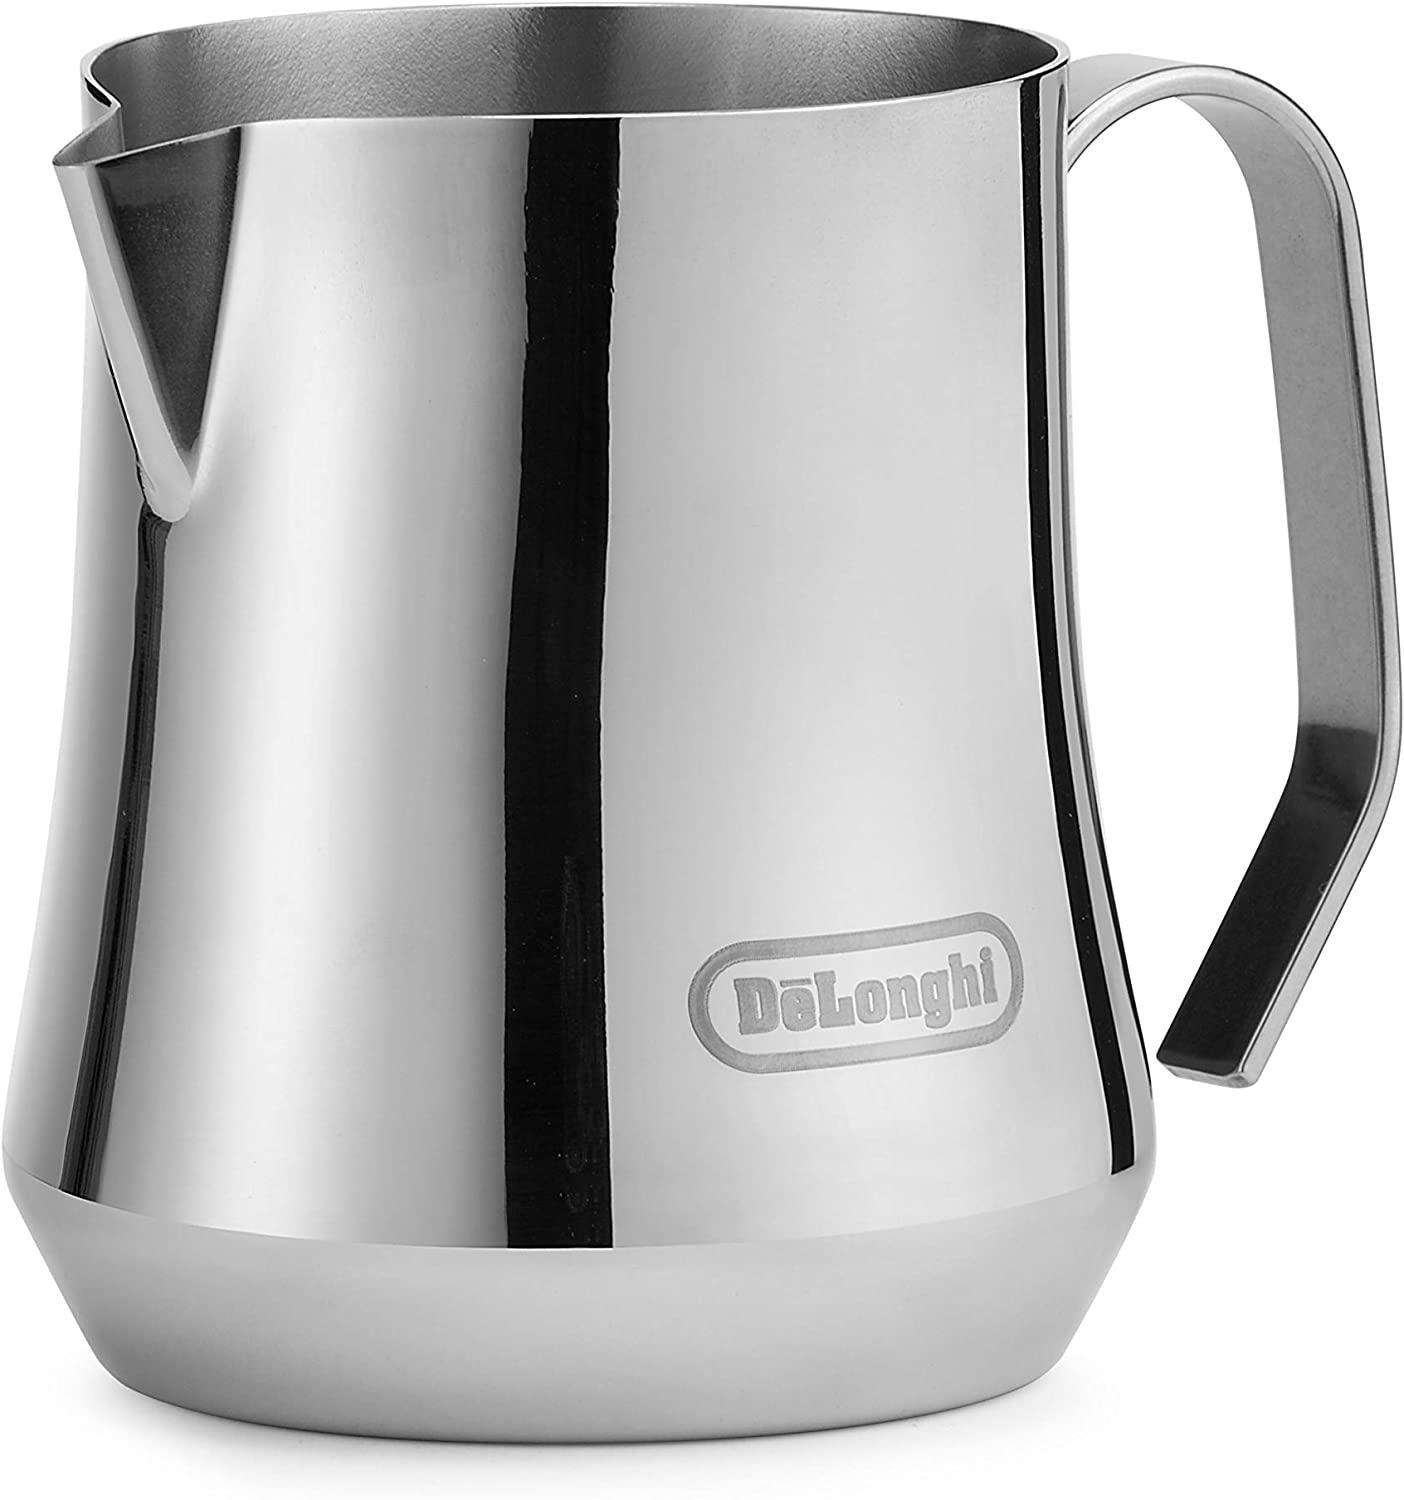 De'Longhi Milk Frothing Pitcher, Stainless Steel, 17 ounce (500 ml), Barista Tool, Frother Jug for Espresso Machine Coffee Cappuccino Latte Art, DLSC069